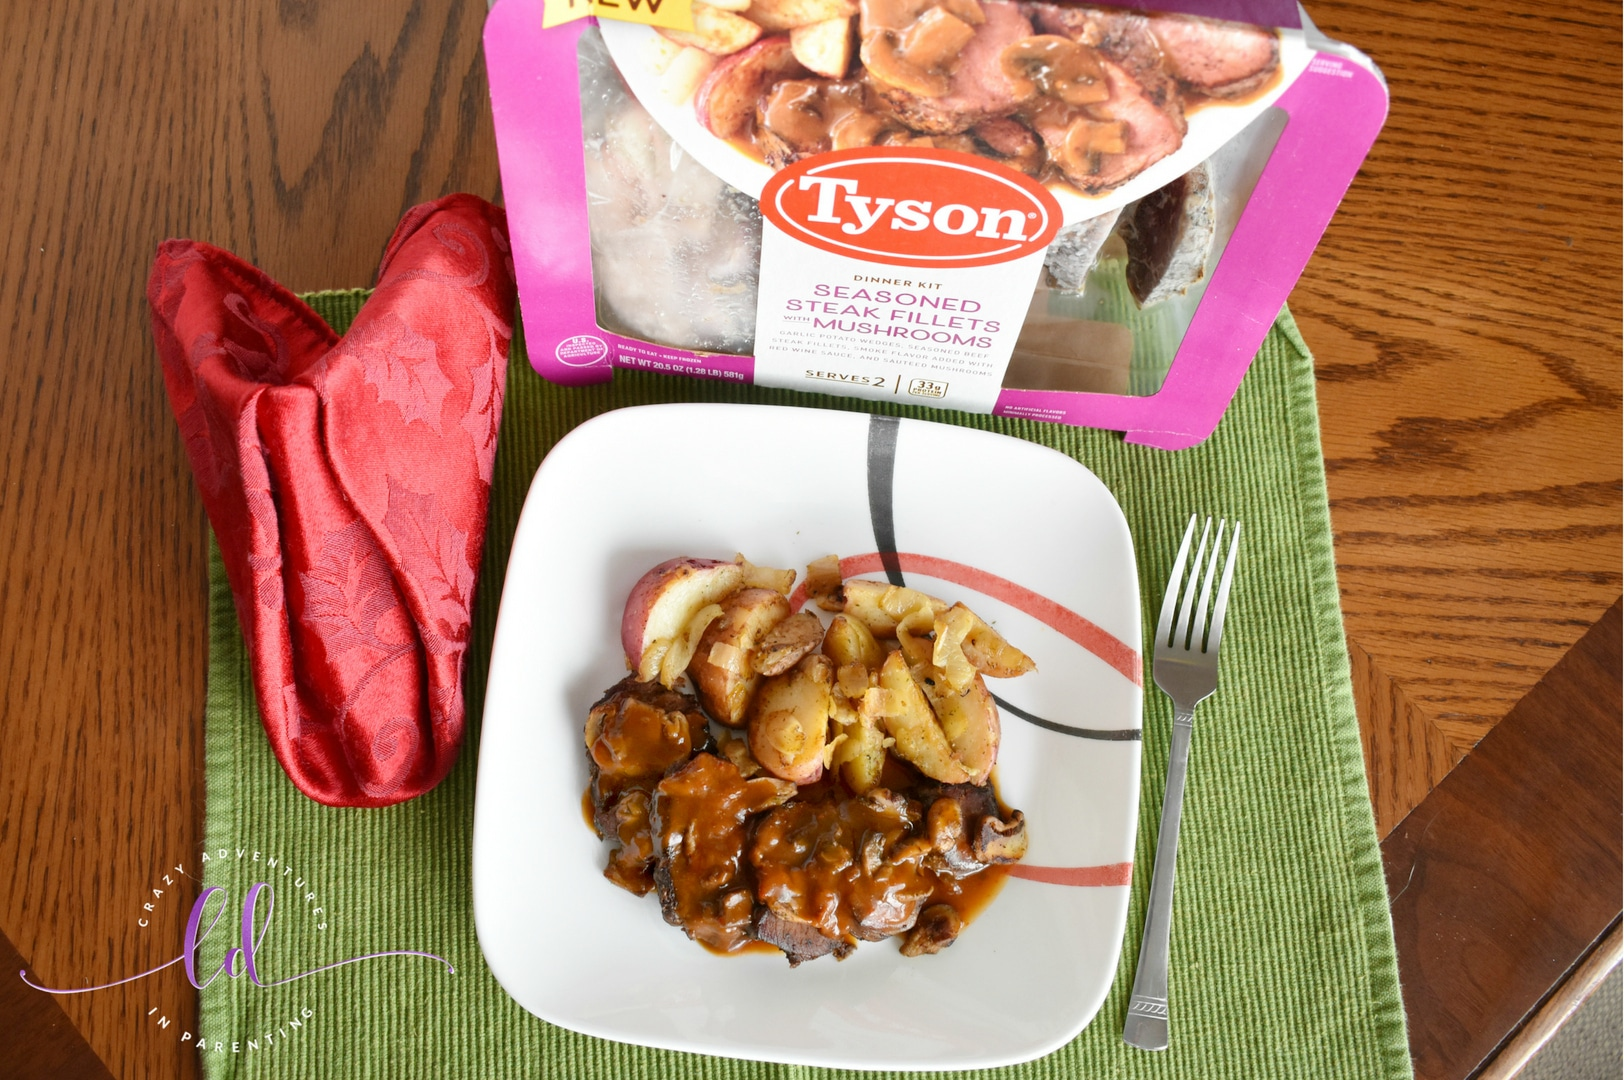 Tyson Fully Cooked Dinner and Entrée Kit - Seasoned Steak Fillet & Mushrooms ready to eat